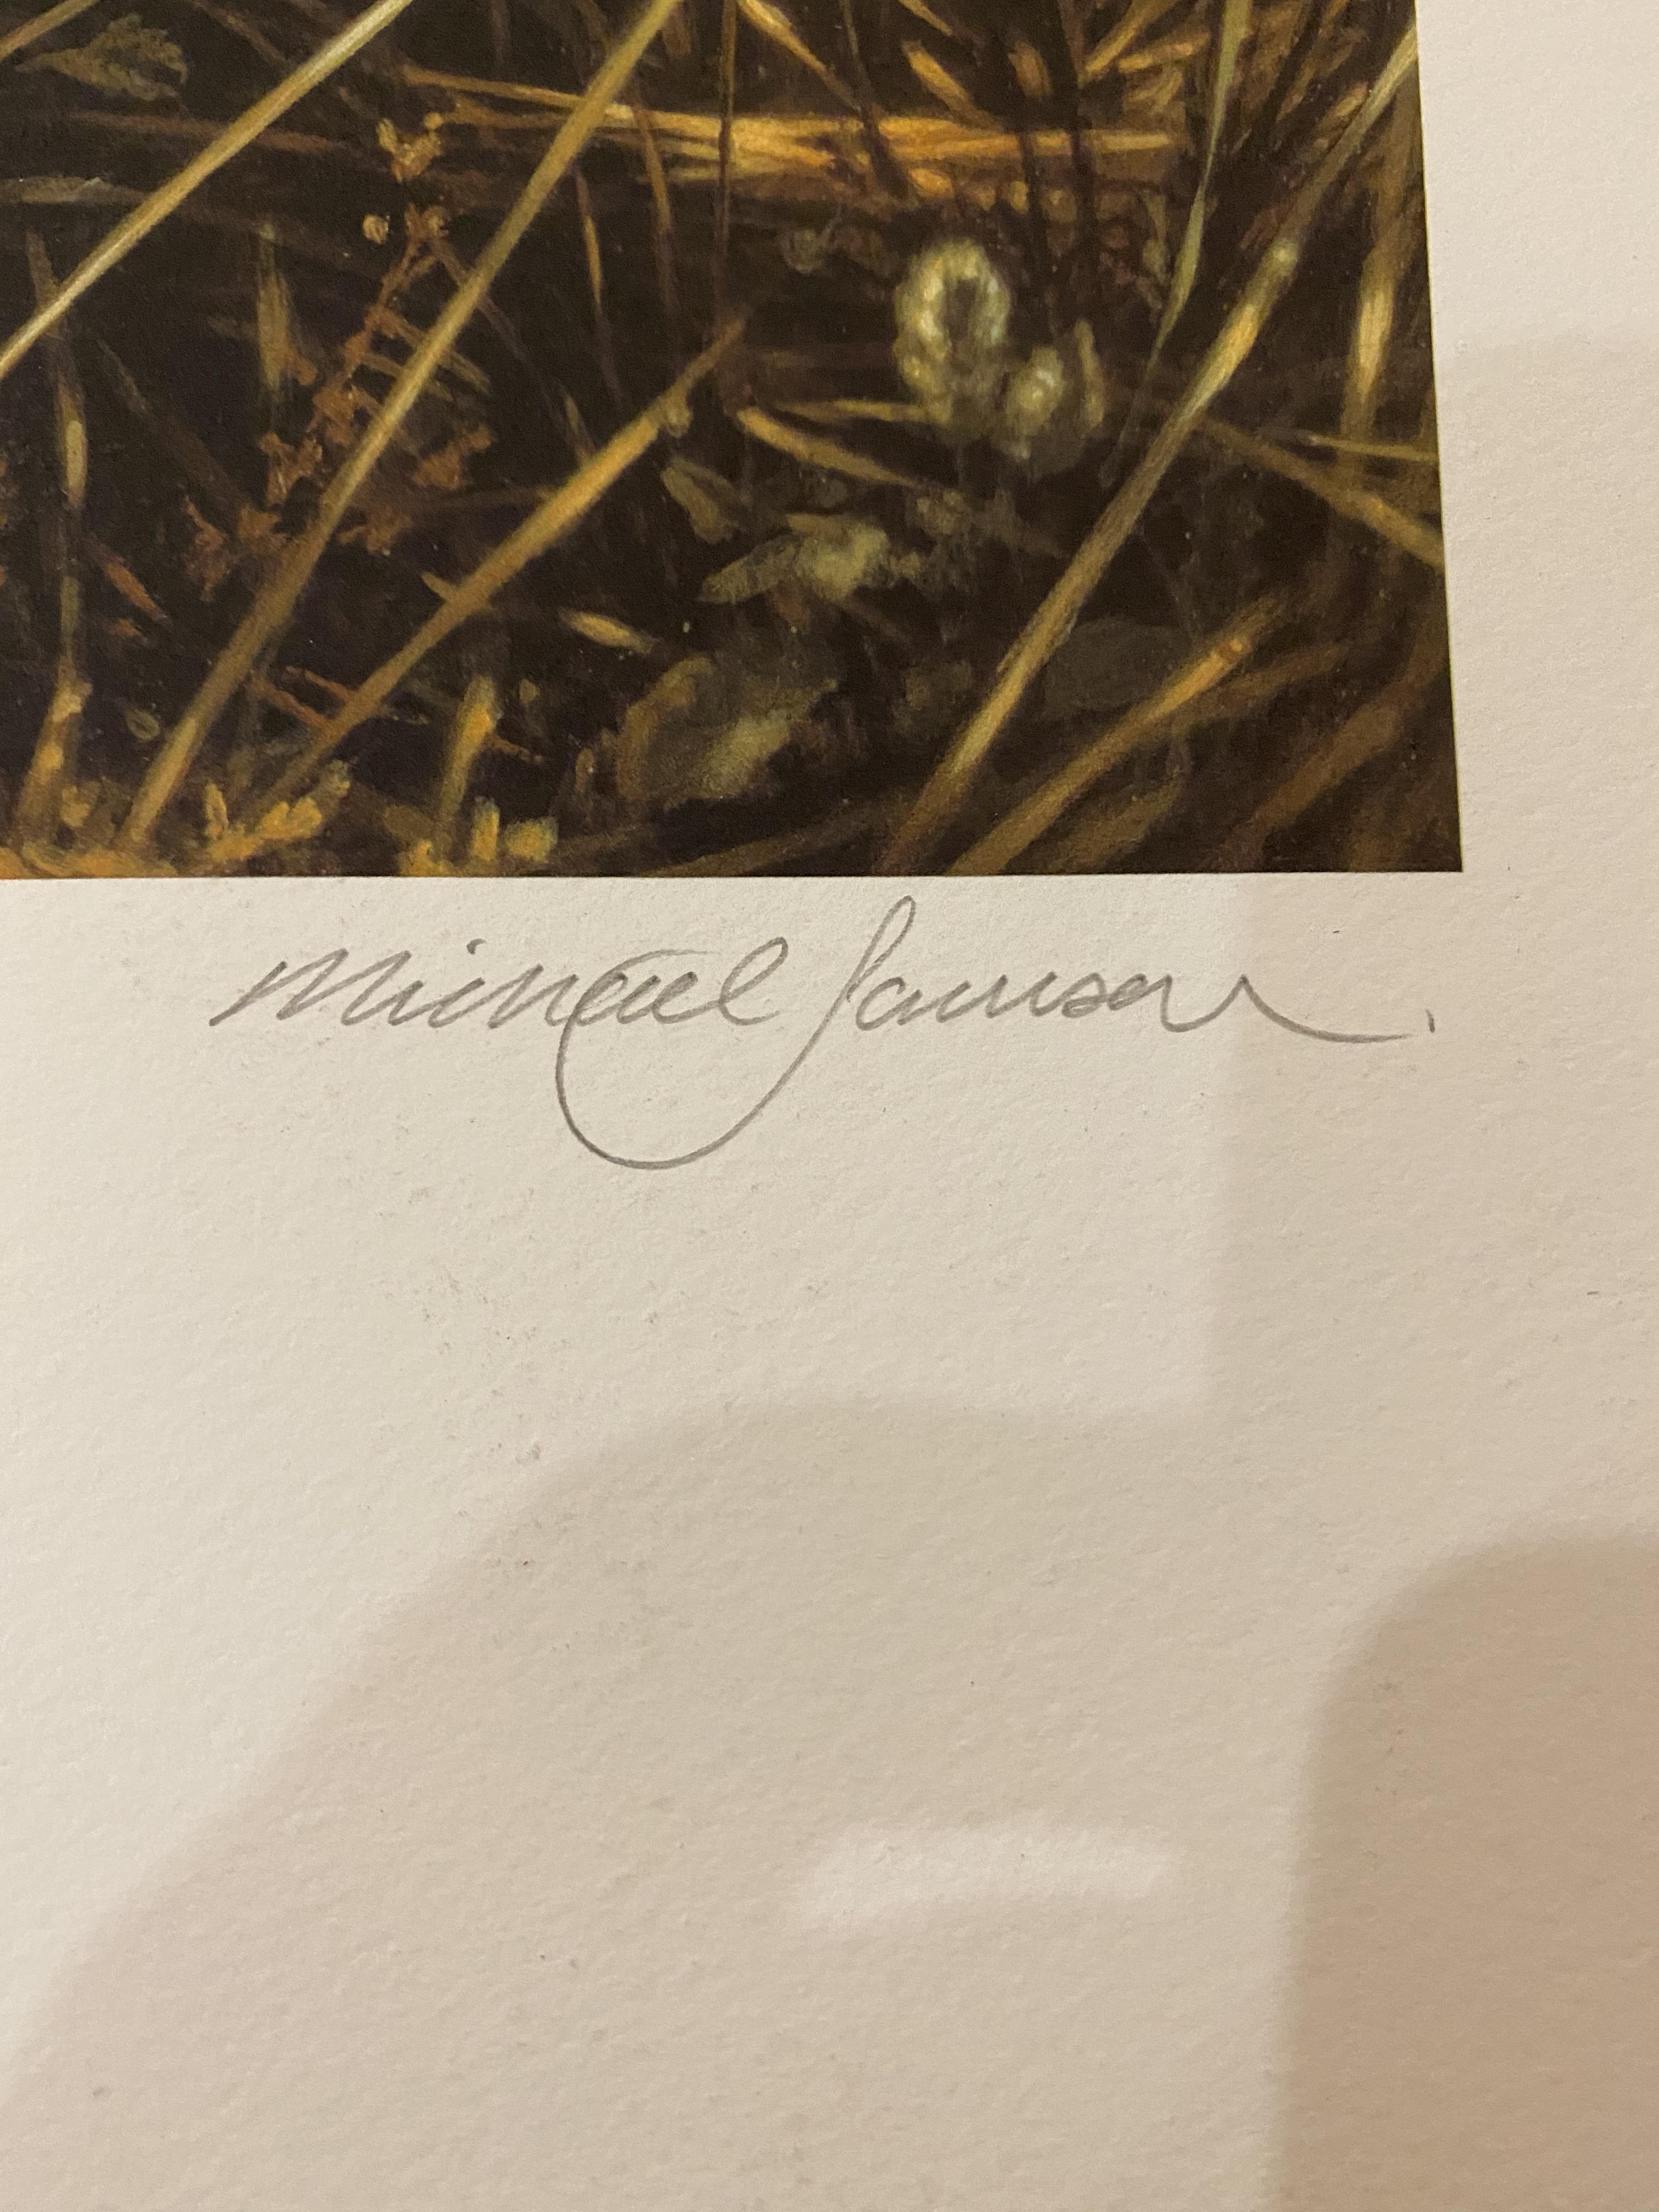 Michael Jackson Signed Limited Edition Print 'Cheetahs' With C.O.A. - Image 3 of 7